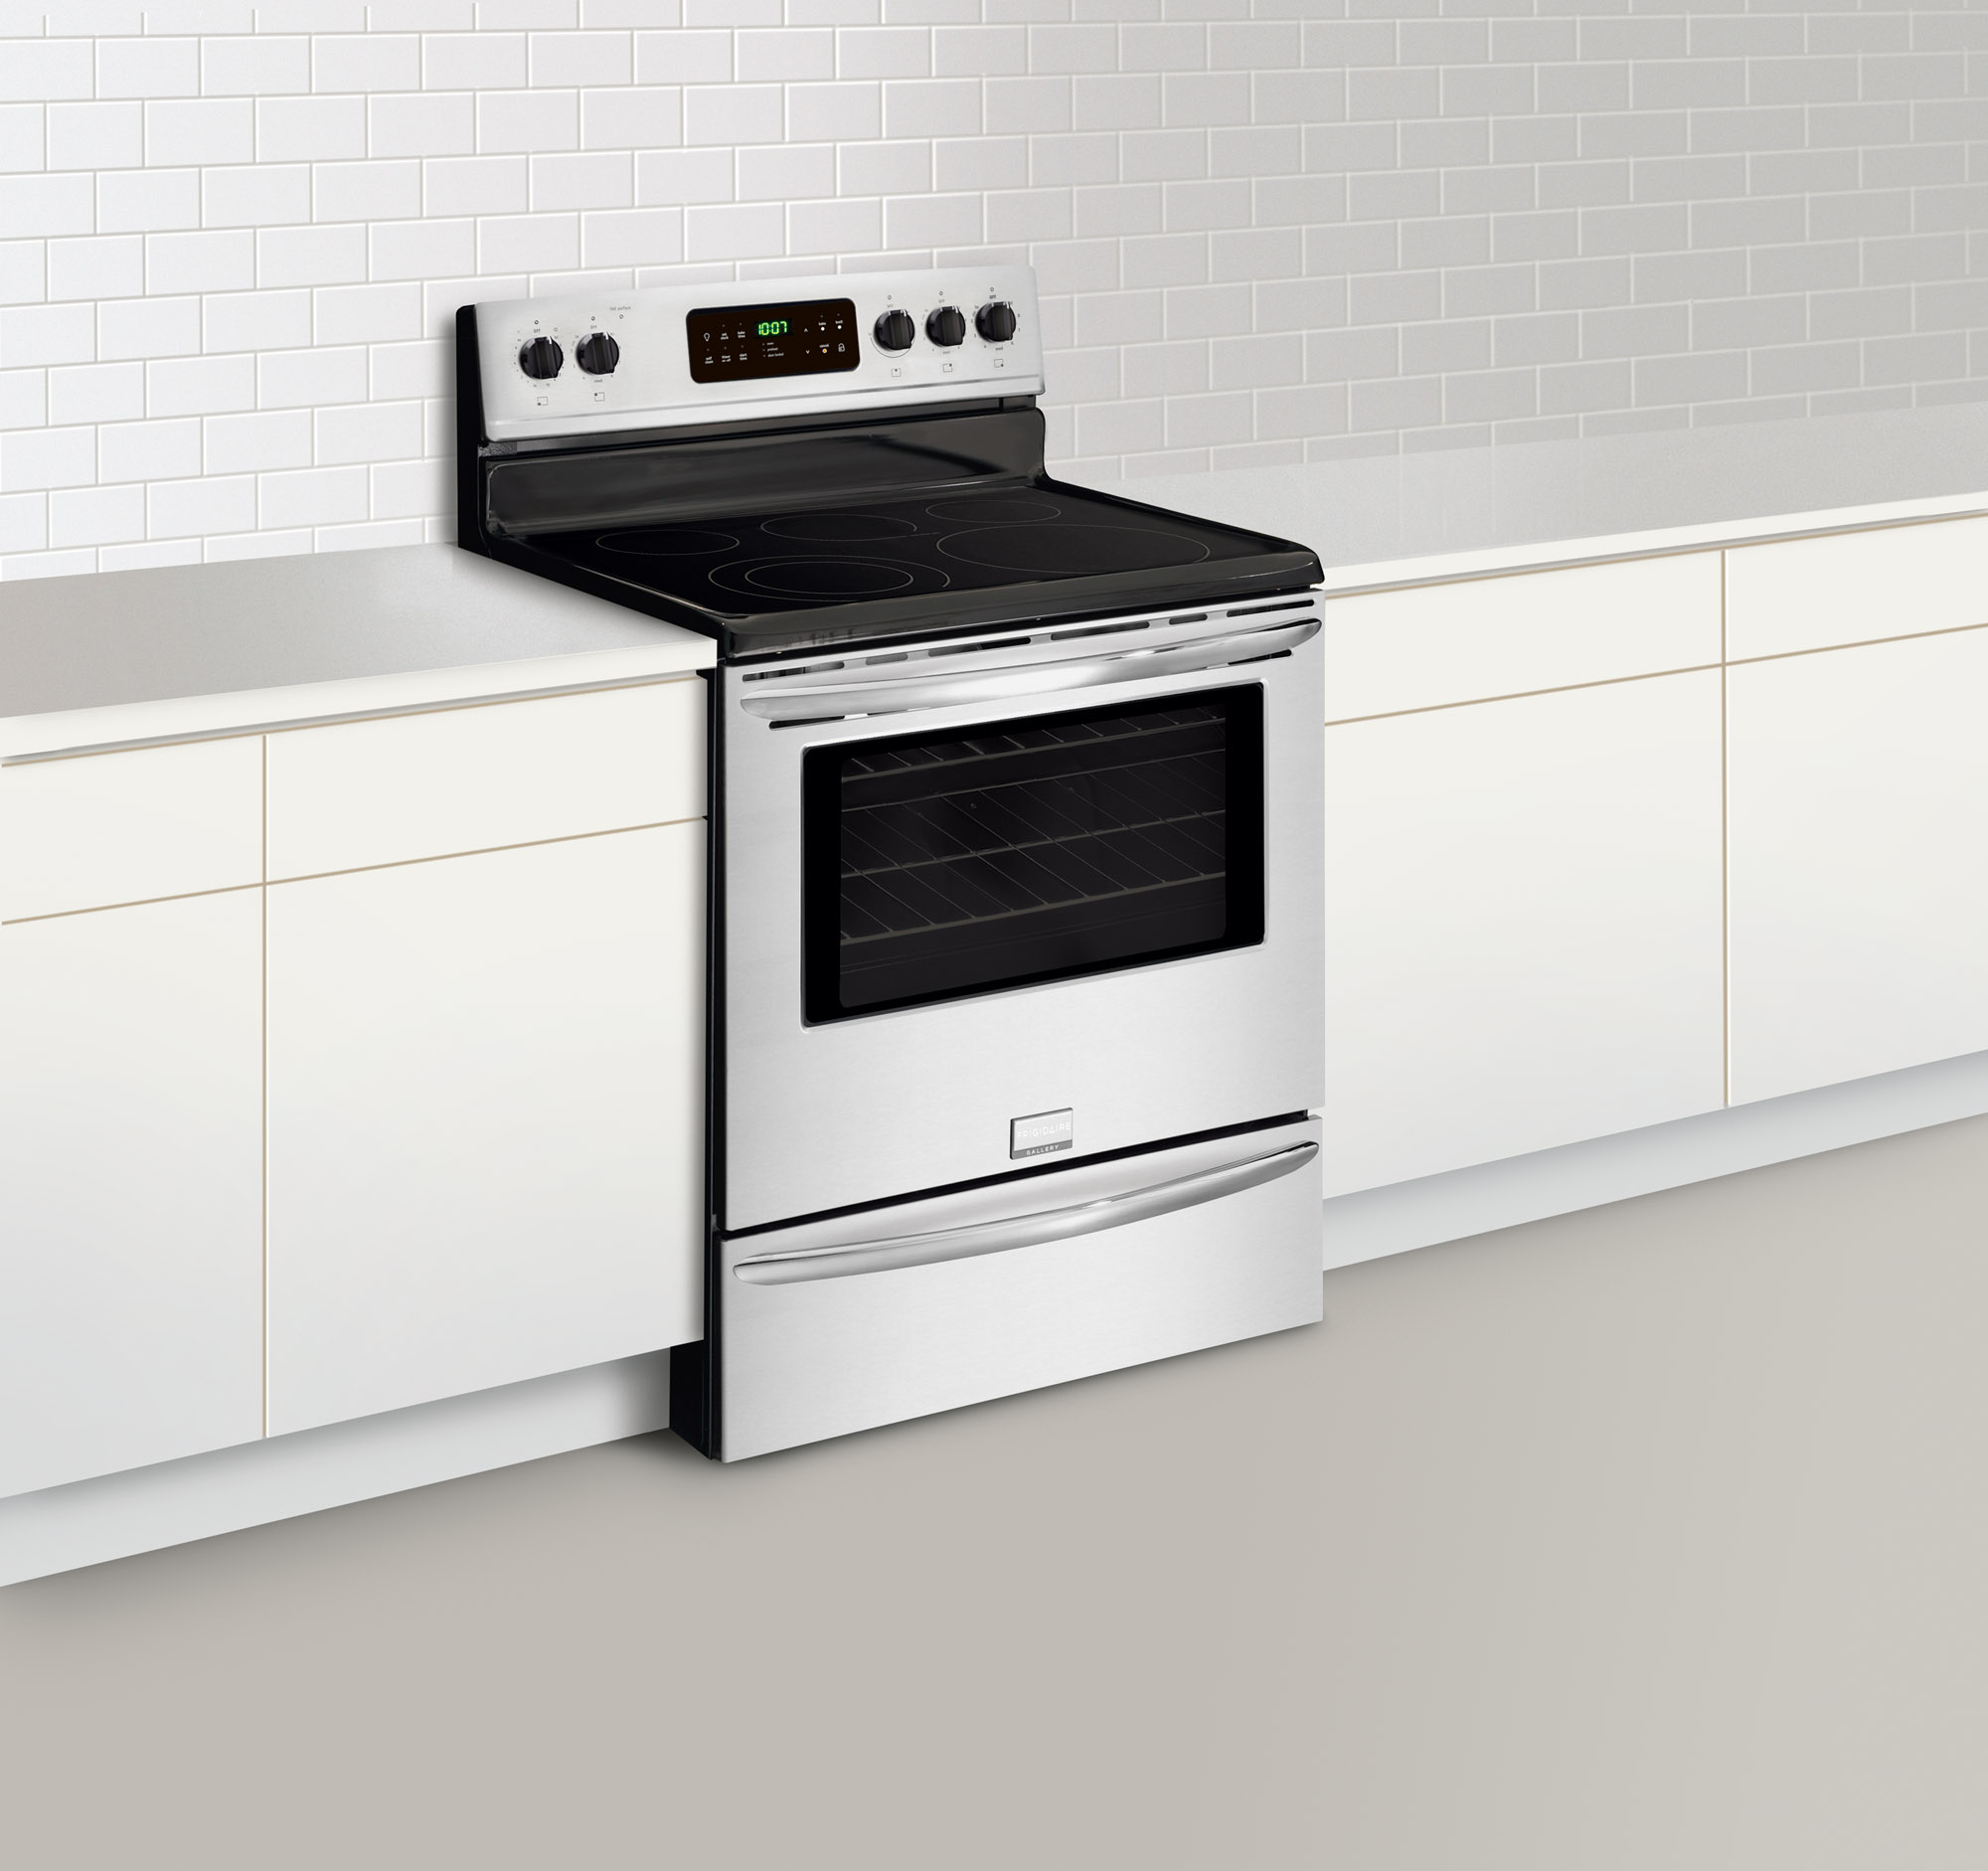 Frigidaire Gallery FGEF3030PF 5.7 cu. ft. Electric Range - Stainless Steel